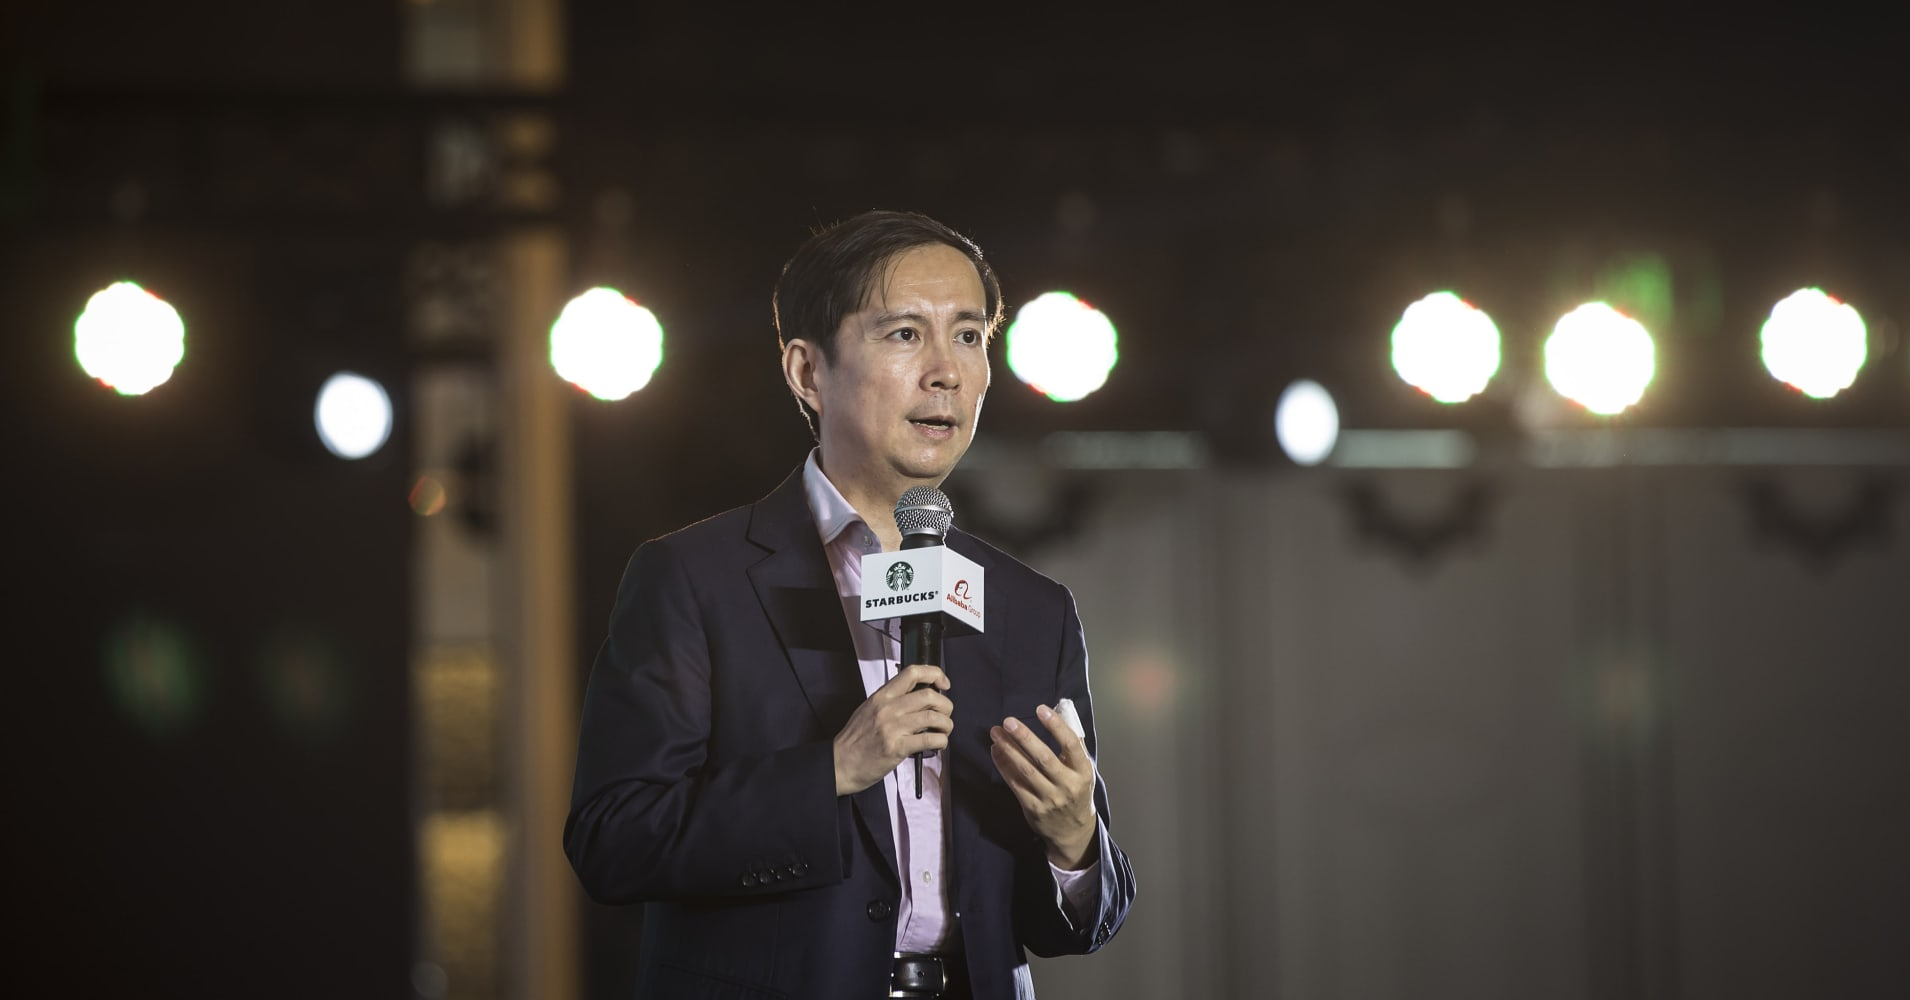 Daniel Zhang, chief executive officer of Alibaba Group Holding Ltd., speaks during a news conference in Shanghai, China.